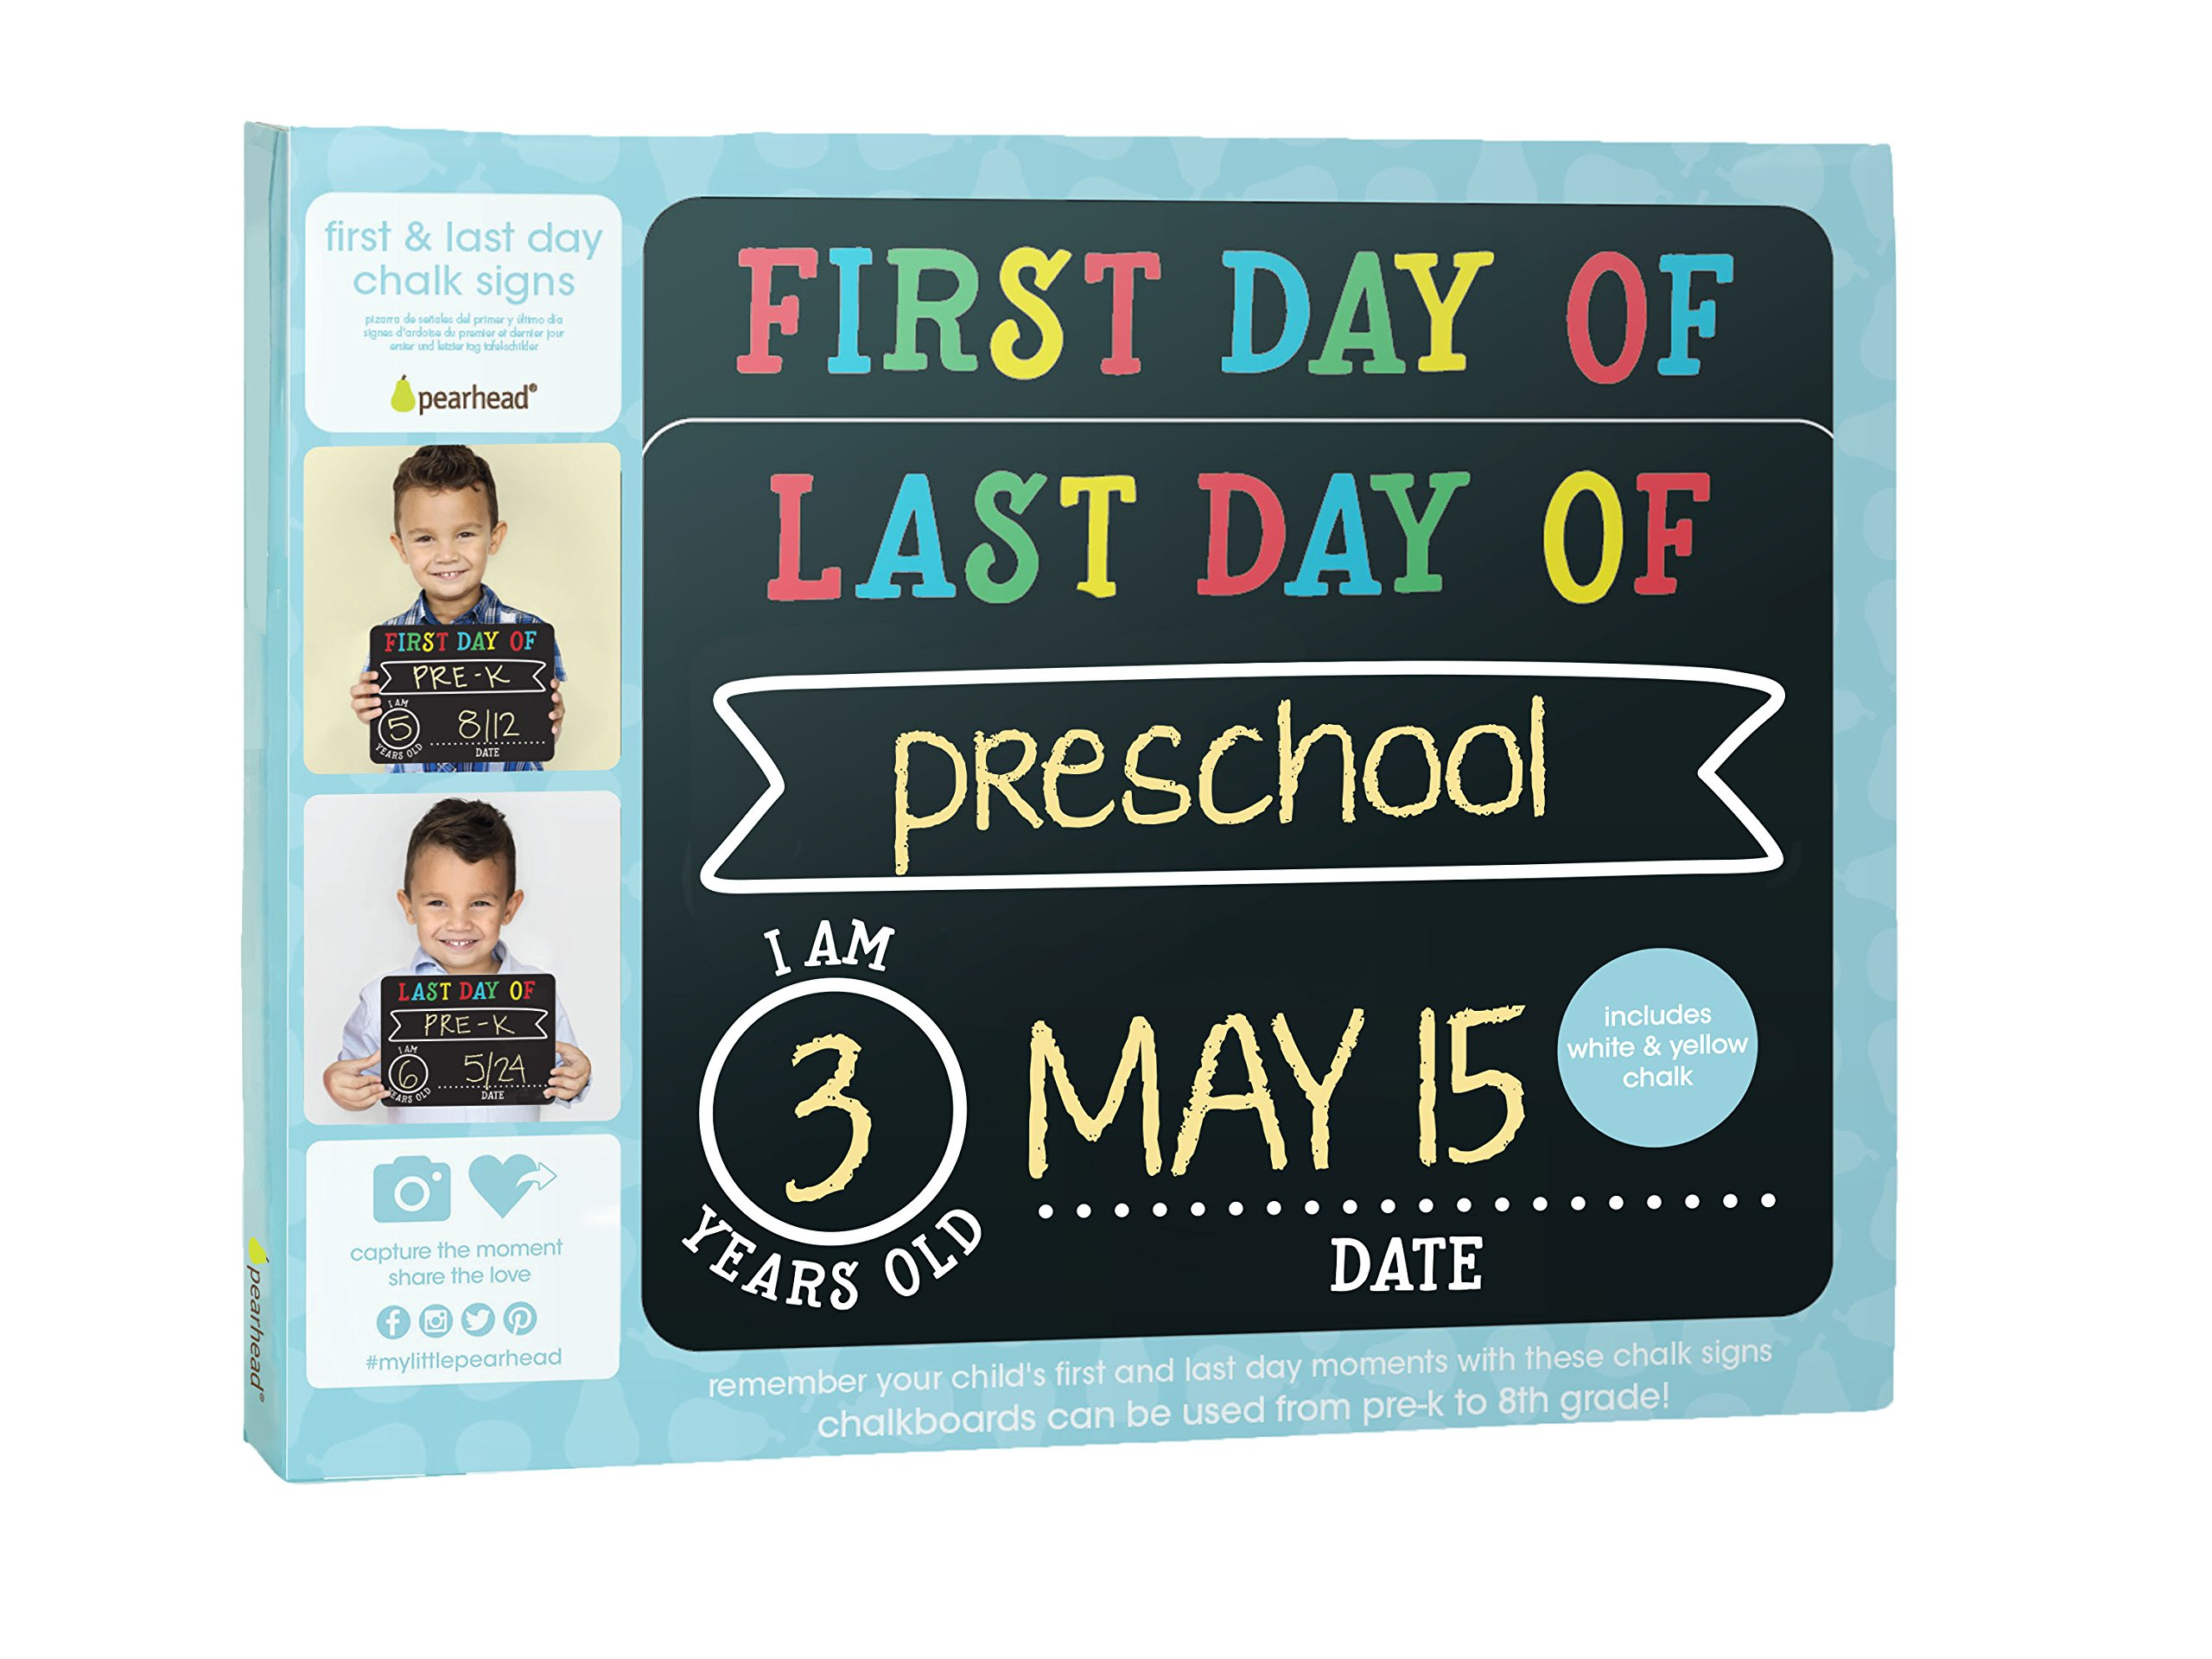 Pearhead First and Last Day of School Photo Sharing Chalkboard Signs; The Perfect Back to School Chalkboard Sign to Commemorate The First Day of School, Set of 2 by Pearhead (Image #9)